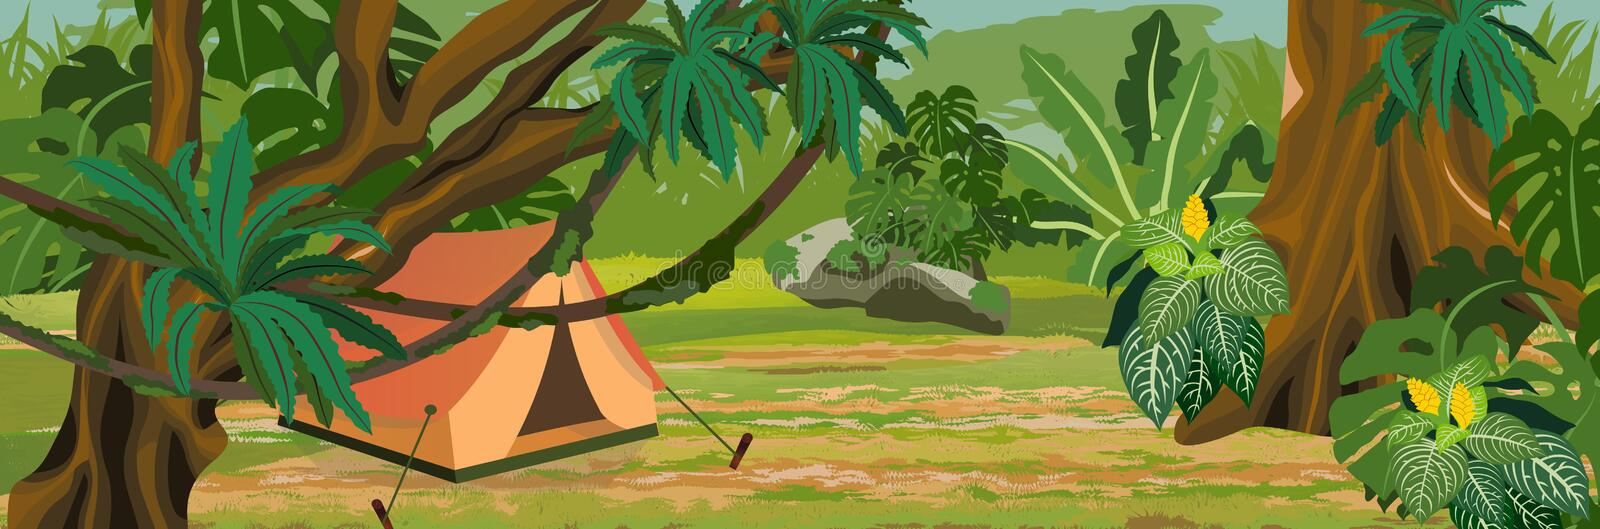 Tourist tent in the jungle. A tropical forest. Rainforests of Amazonia stock illustration